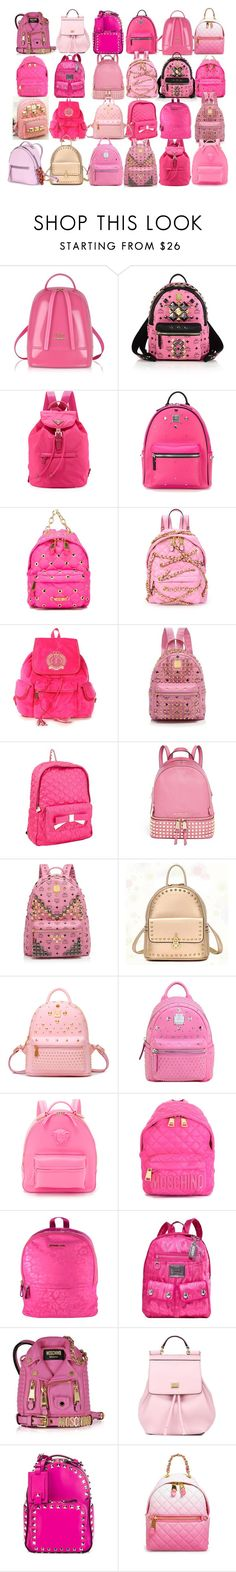 """Pink BackPacks"" by sofi6277 ❤ liked on Polyvore featuring Furla, MCM, Prada, Moschino, Juicy Couture, Betsey Johnson, MICHAEL Michael Kors, BeiBaoBao, Chicnova Fashion and Versace"